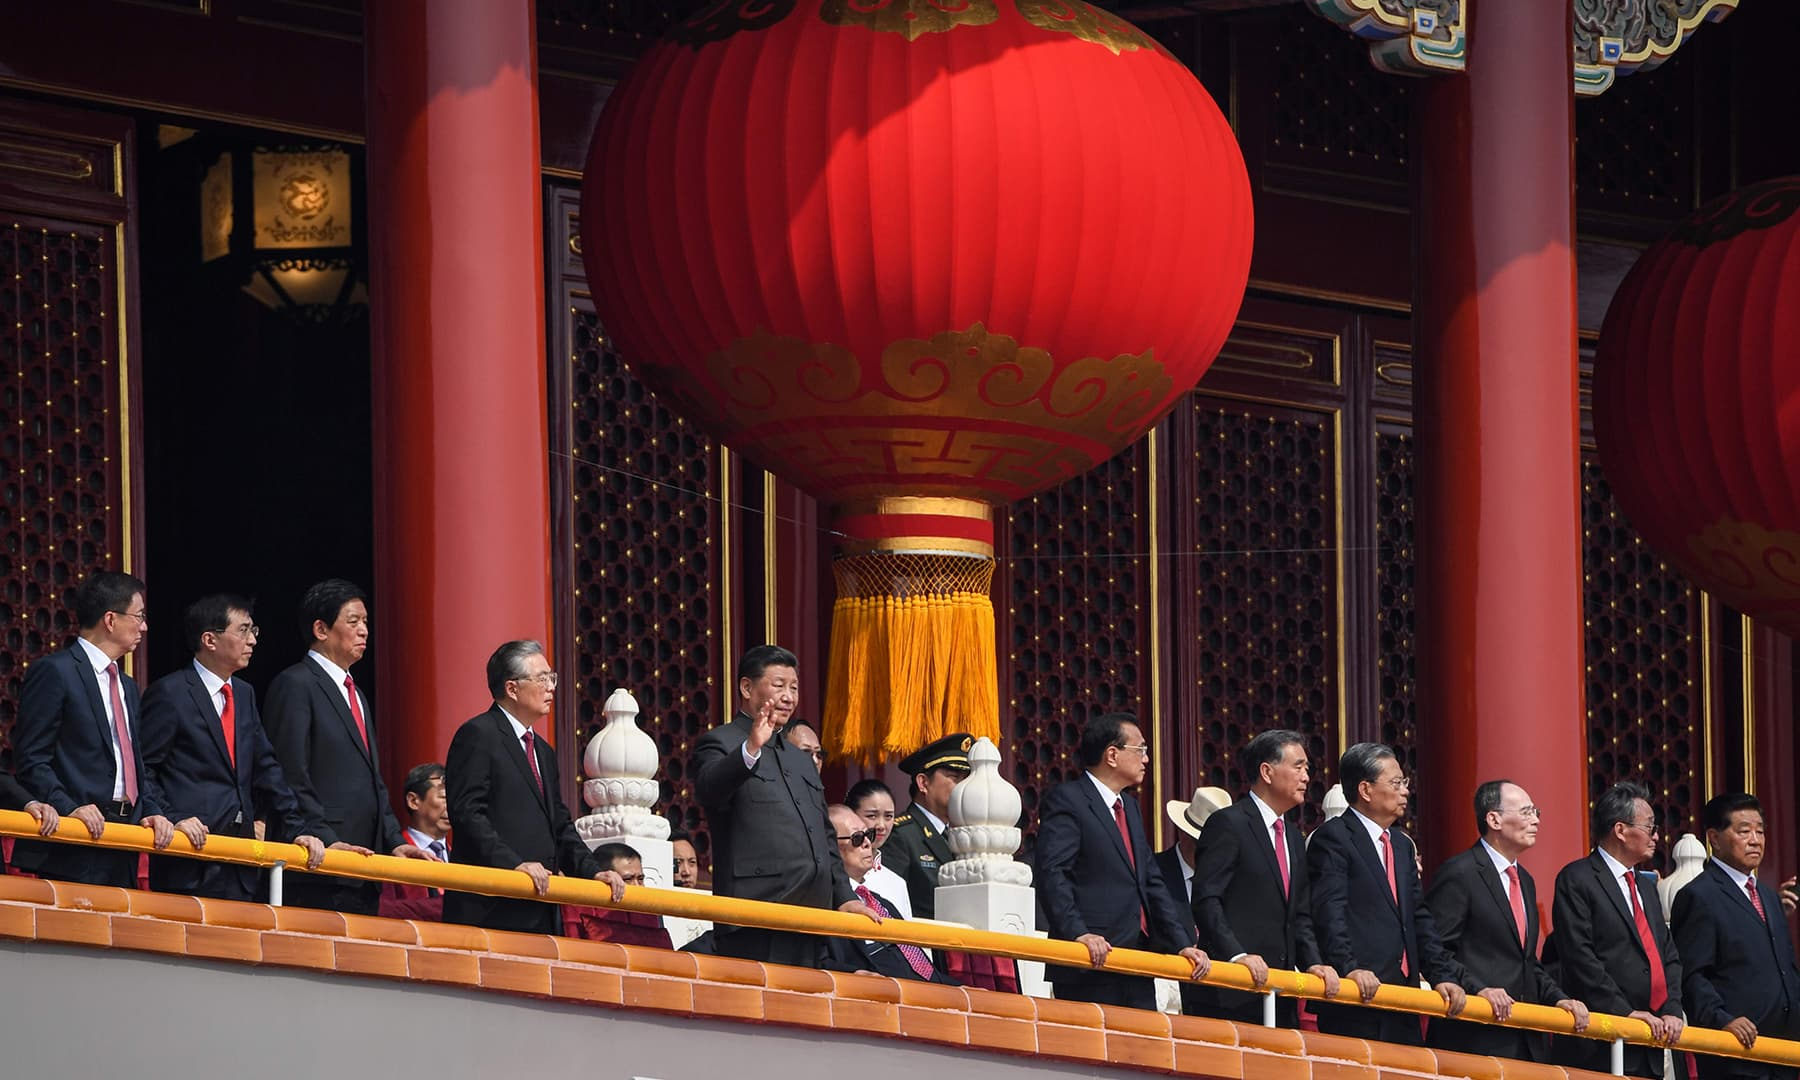 Chinese President Xi Jinping along with other government officials watch a military parade. — AFP